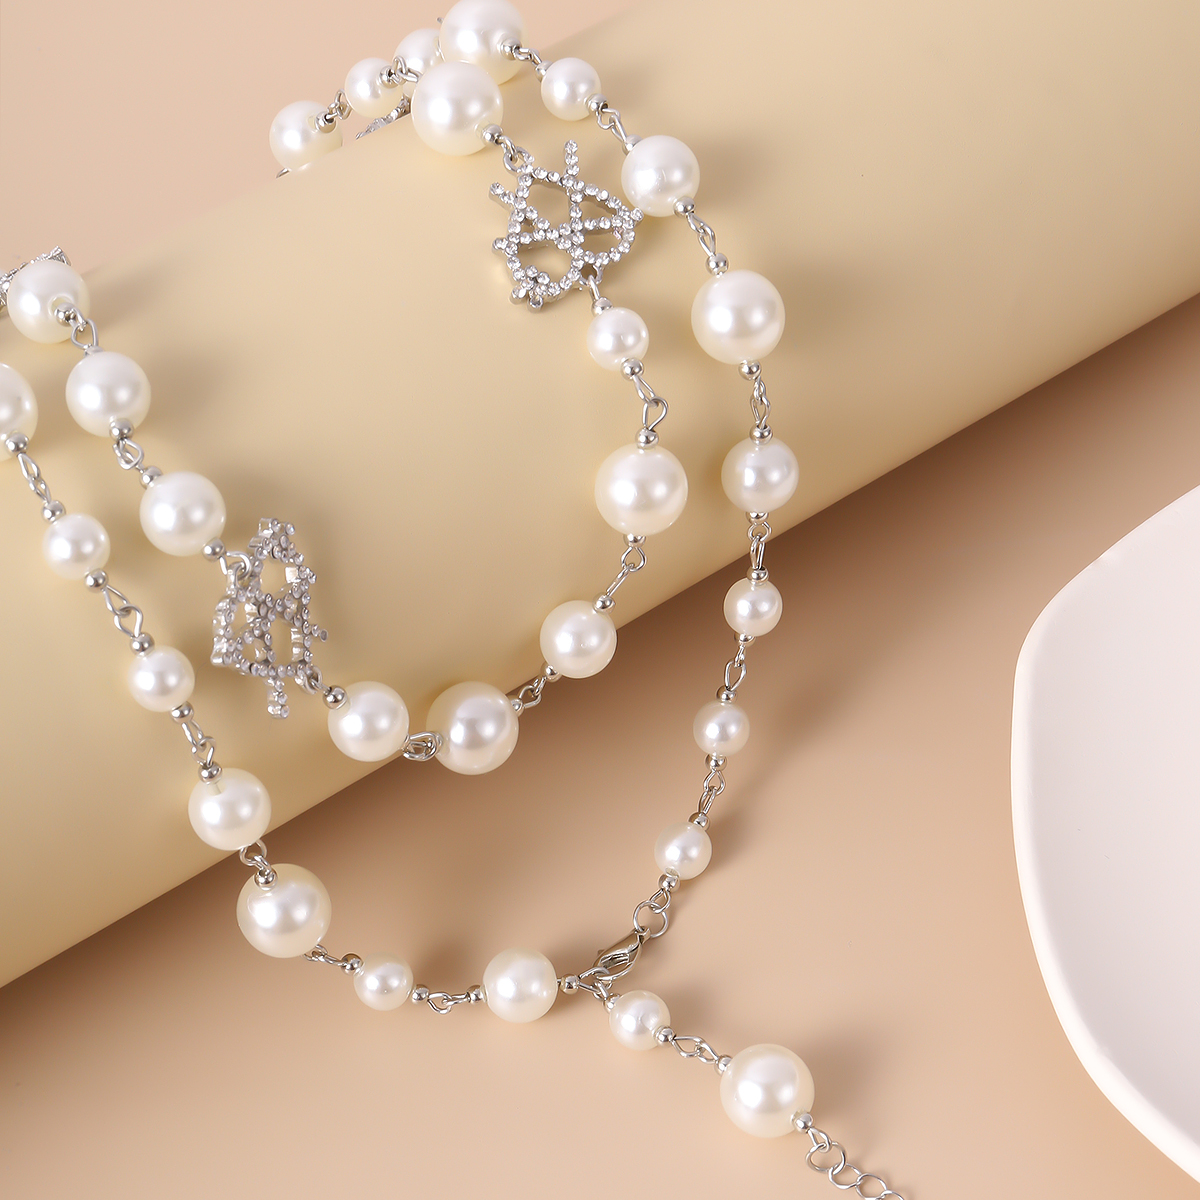 SHIXIN Simulated Pearl Choker Hollow Crystal Heart Necklace for Women Long Tassel Necklaces on Neck 2020 Wedding Jewelry Fashion